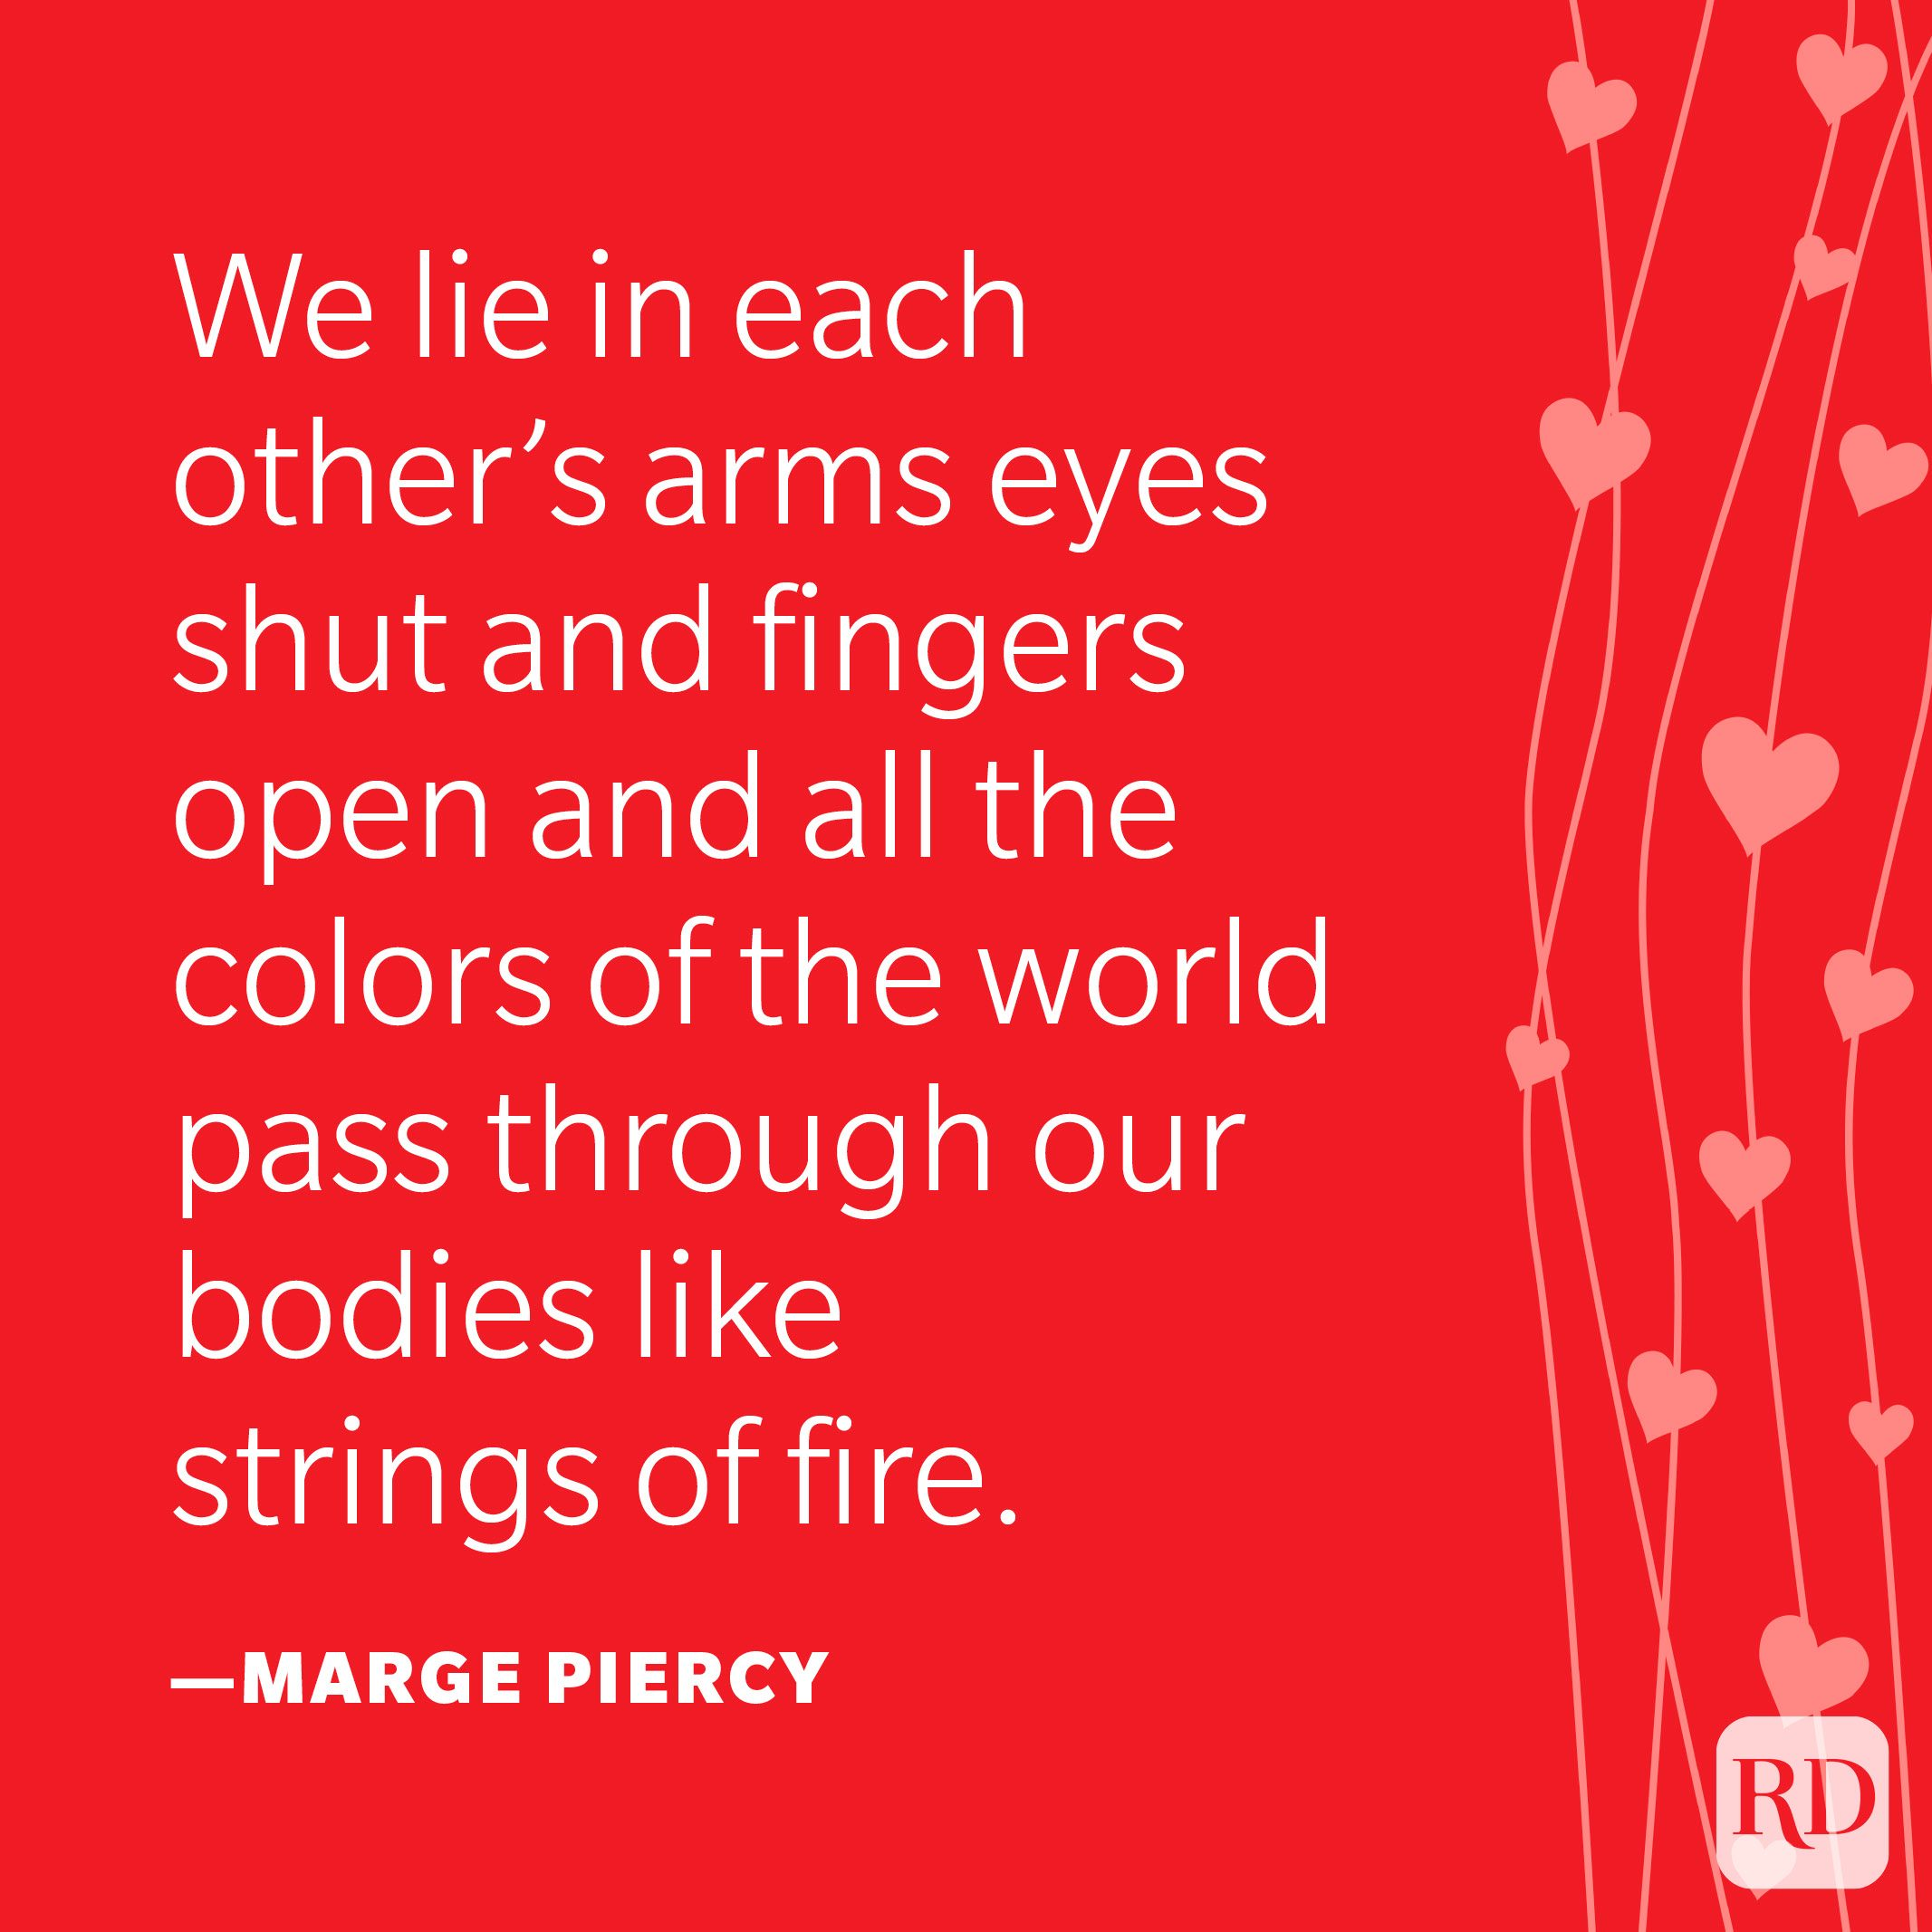 """""""We lie in each other's arms eyes shut and fingers open and all the colors of the world pass through our bodies like strings of fire."""" —Marge Piercy"""